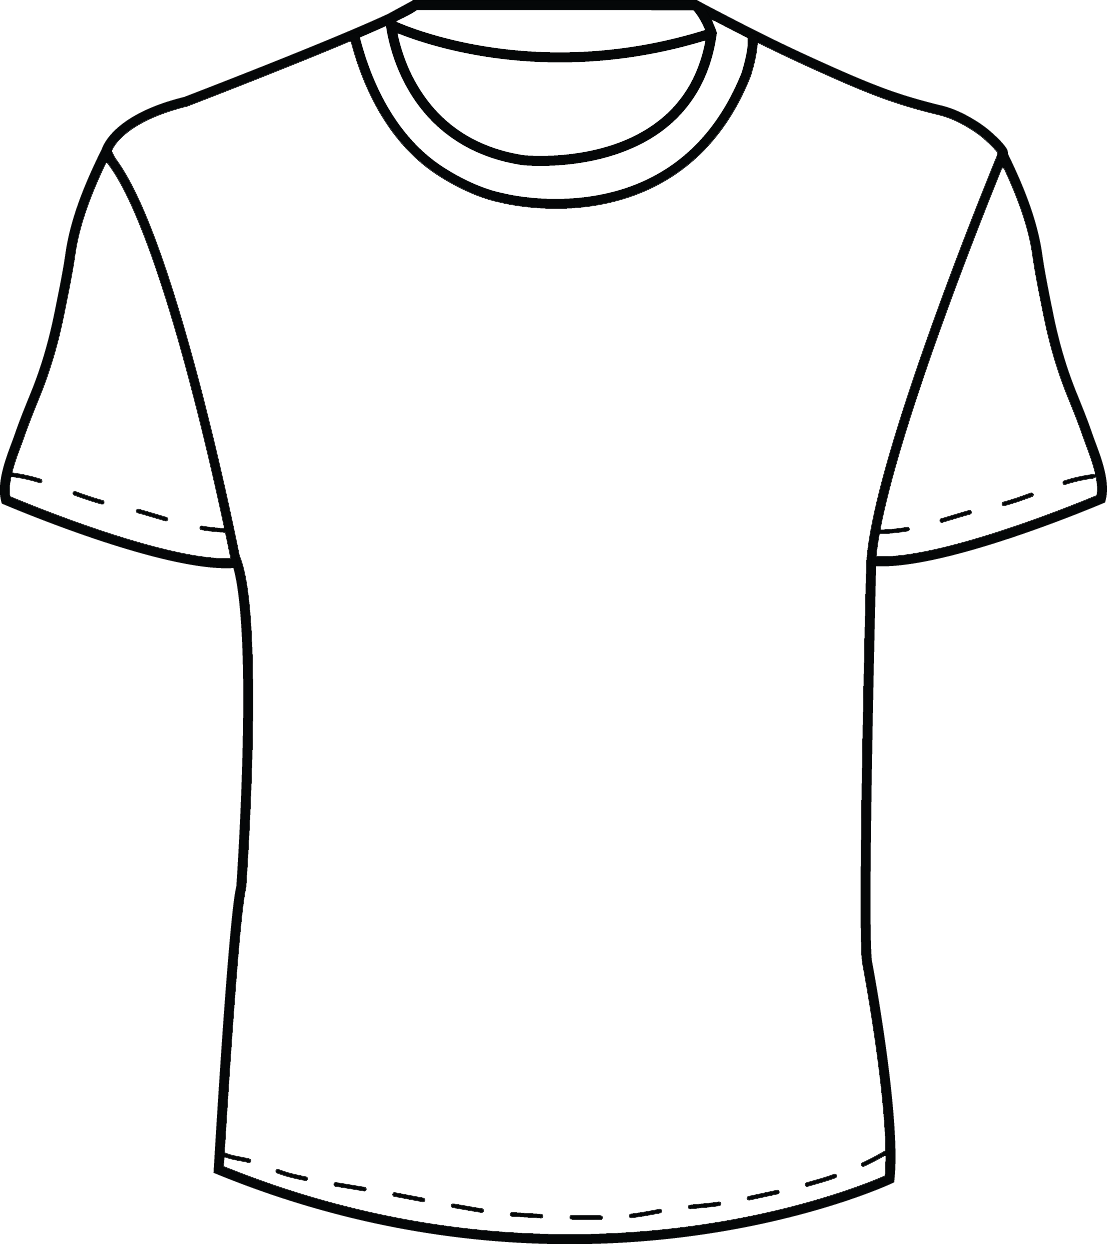 t shirt template archives design tshirt today and free shipping